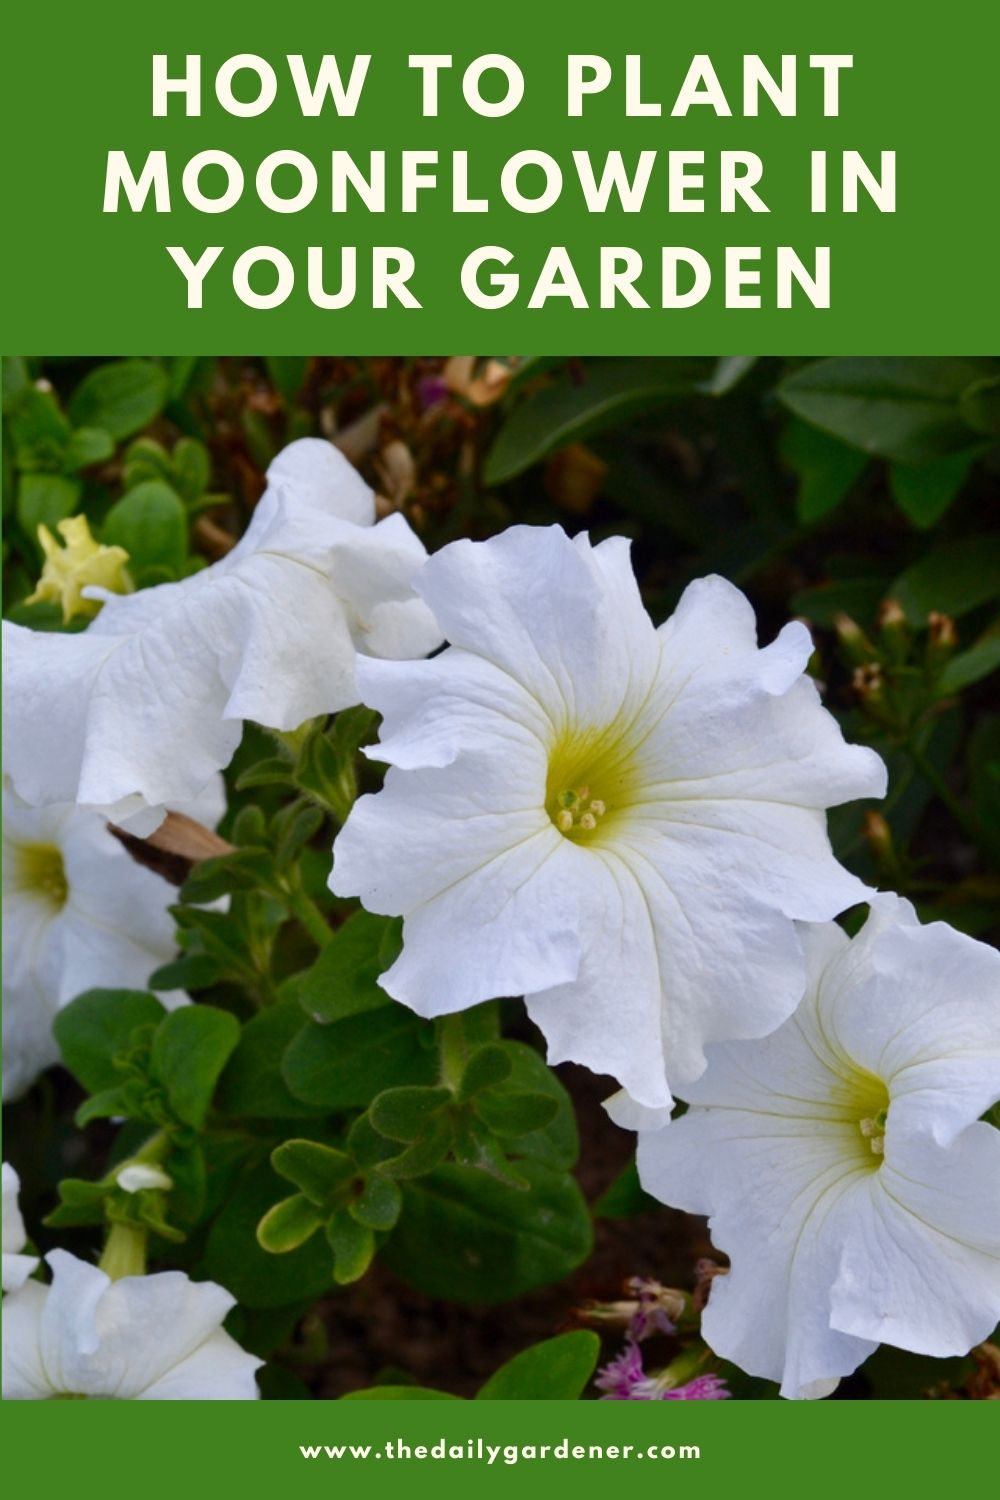 How to Plant Moonflower in Your Garden (Tricks to Care!) 1